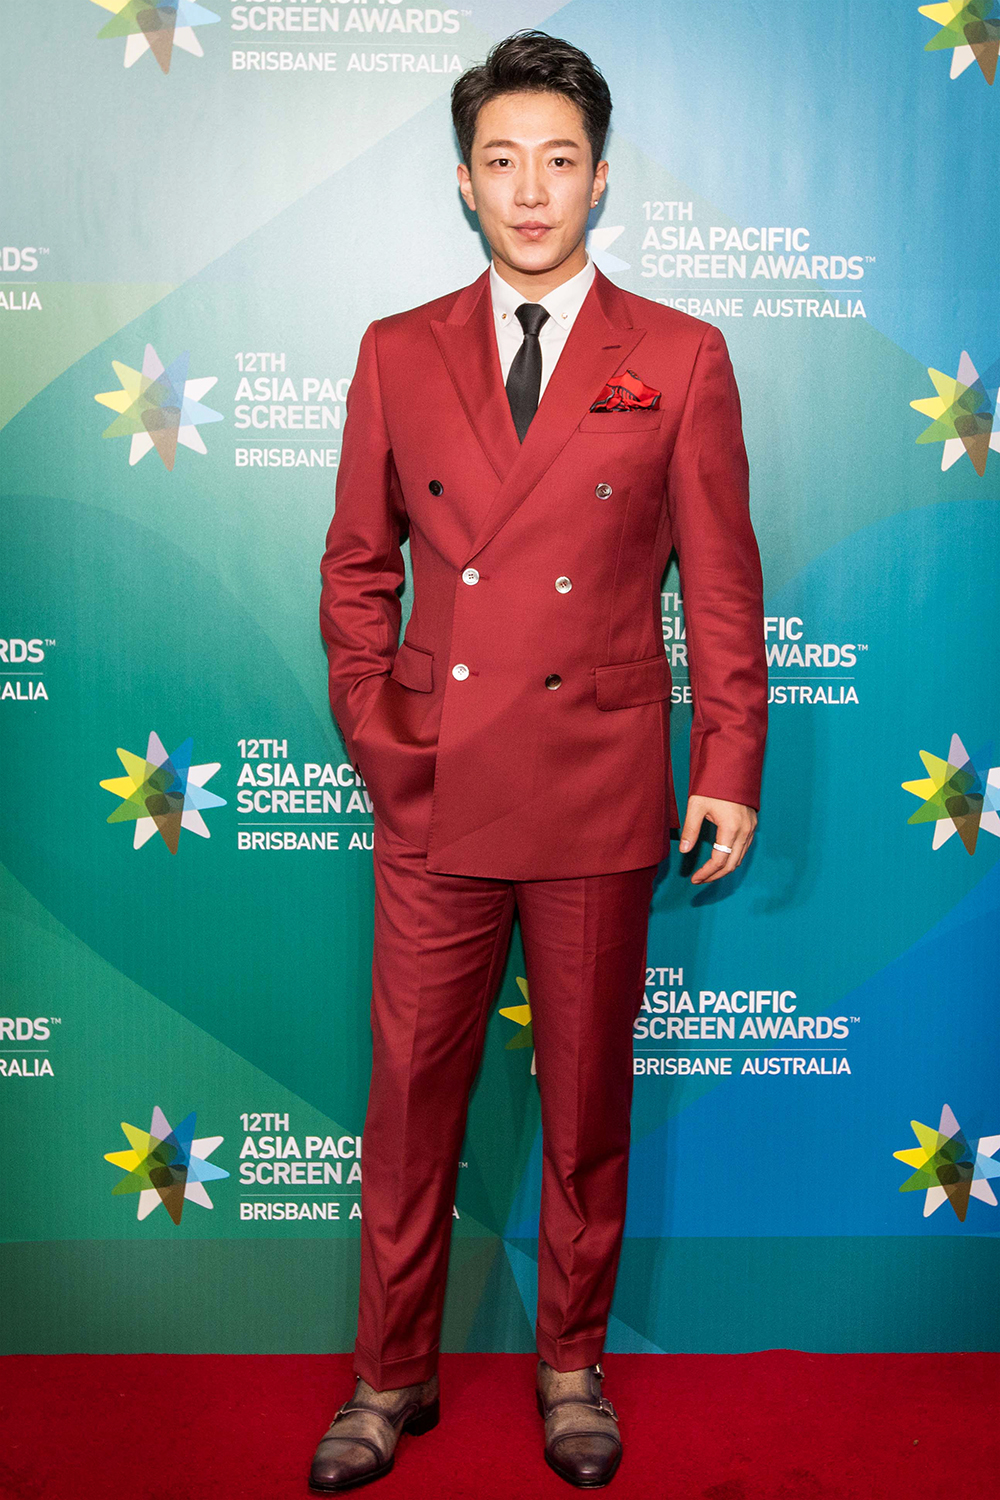 Styled Mens Fashion on the red carpet at the Asia Pacific Screen Awards held in Brisbane